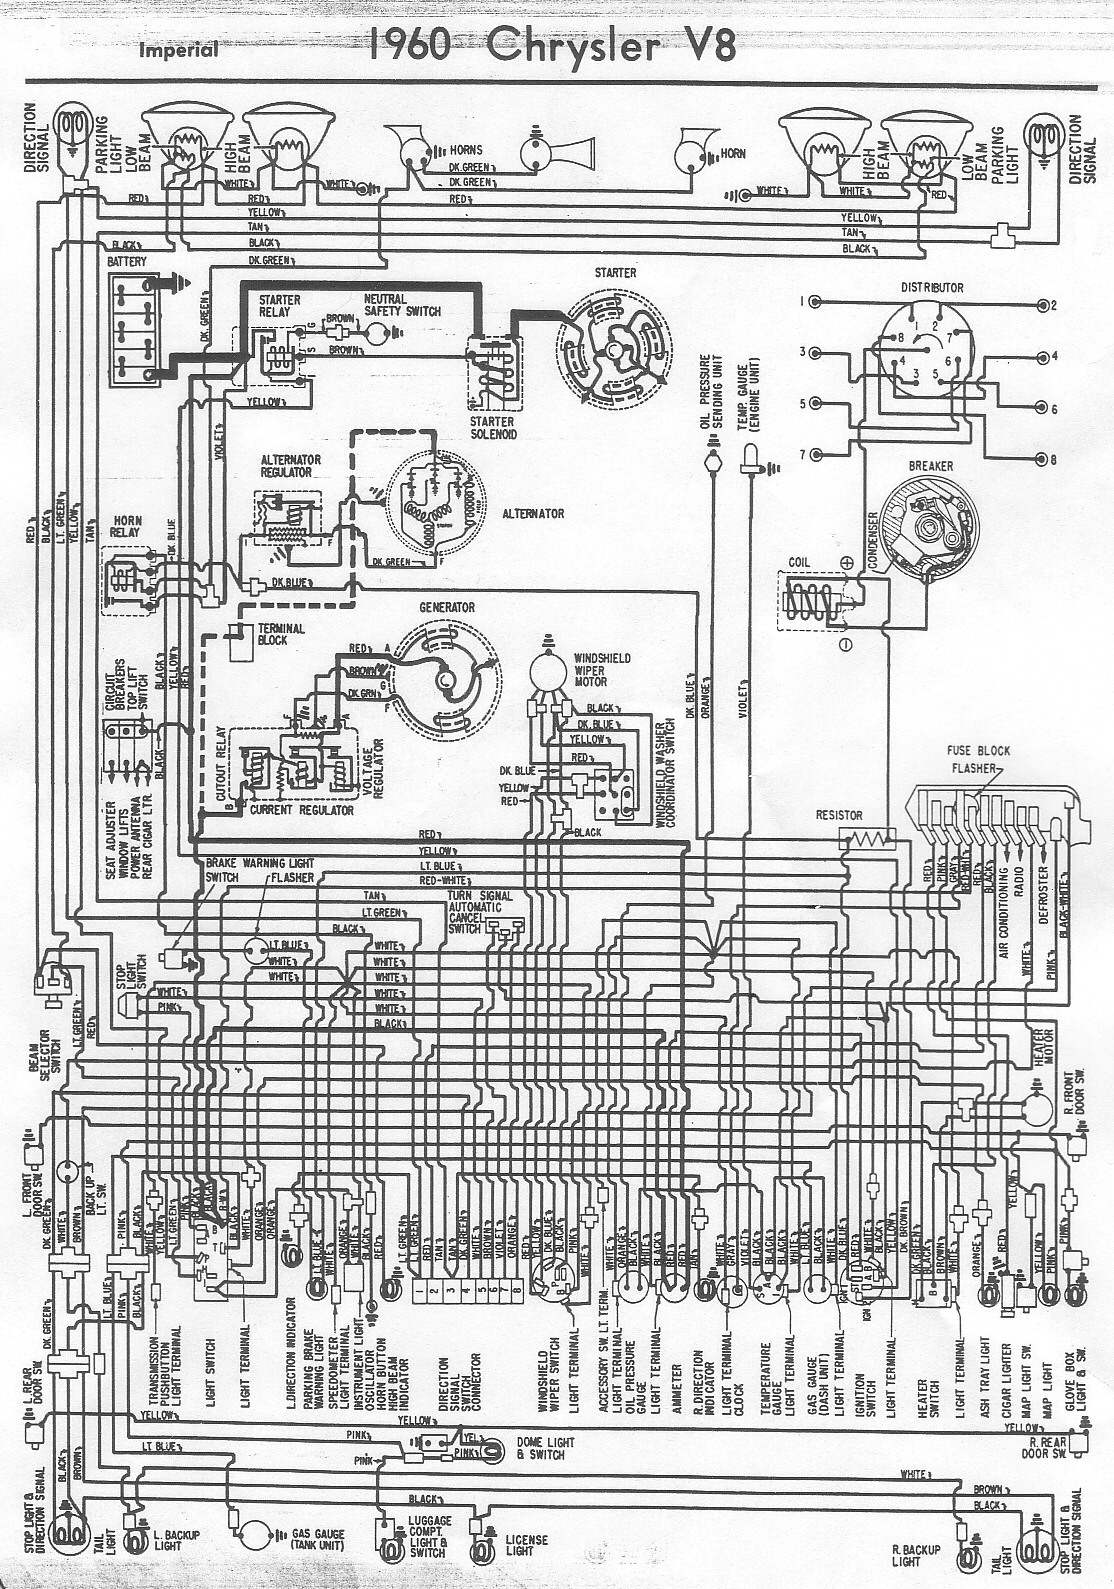 chrysler wiring diagrams schematics on switch bilge diagram free auto 1960 v8 imperial